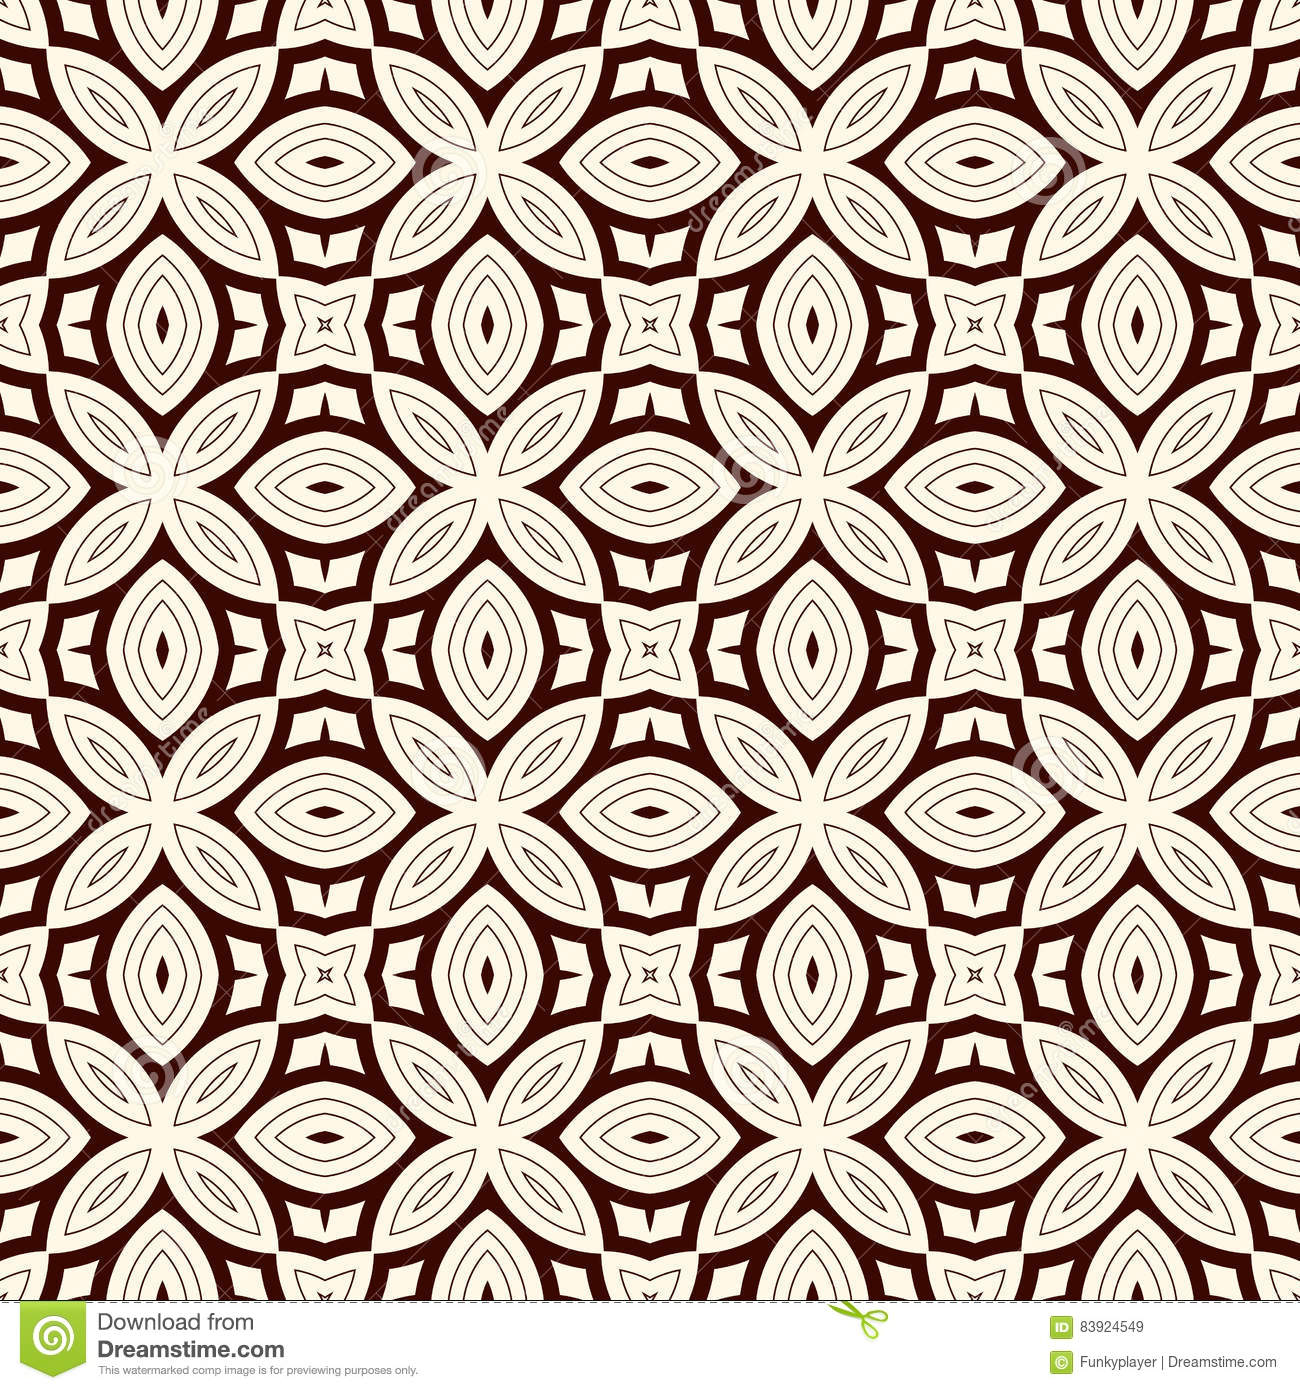 Motif Wallpaper Abstrak Outline Seamless Pattern With Floral Motif Ornamental Abstract